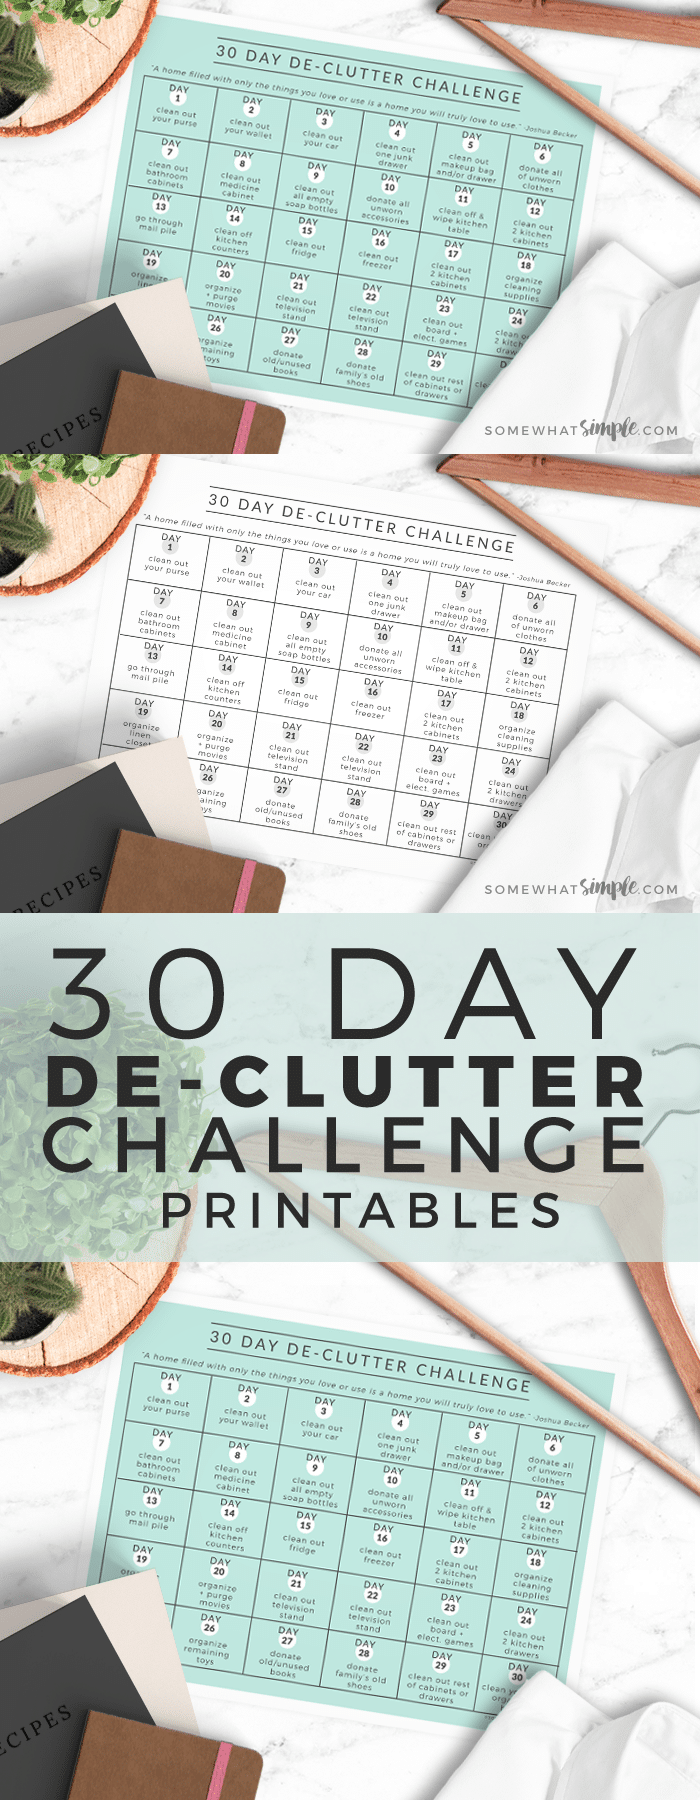 Feeling overwhelmed by 'stuff'?! We'll show you how easy it is to take back your home with our 30 Day Declutter Challenge!